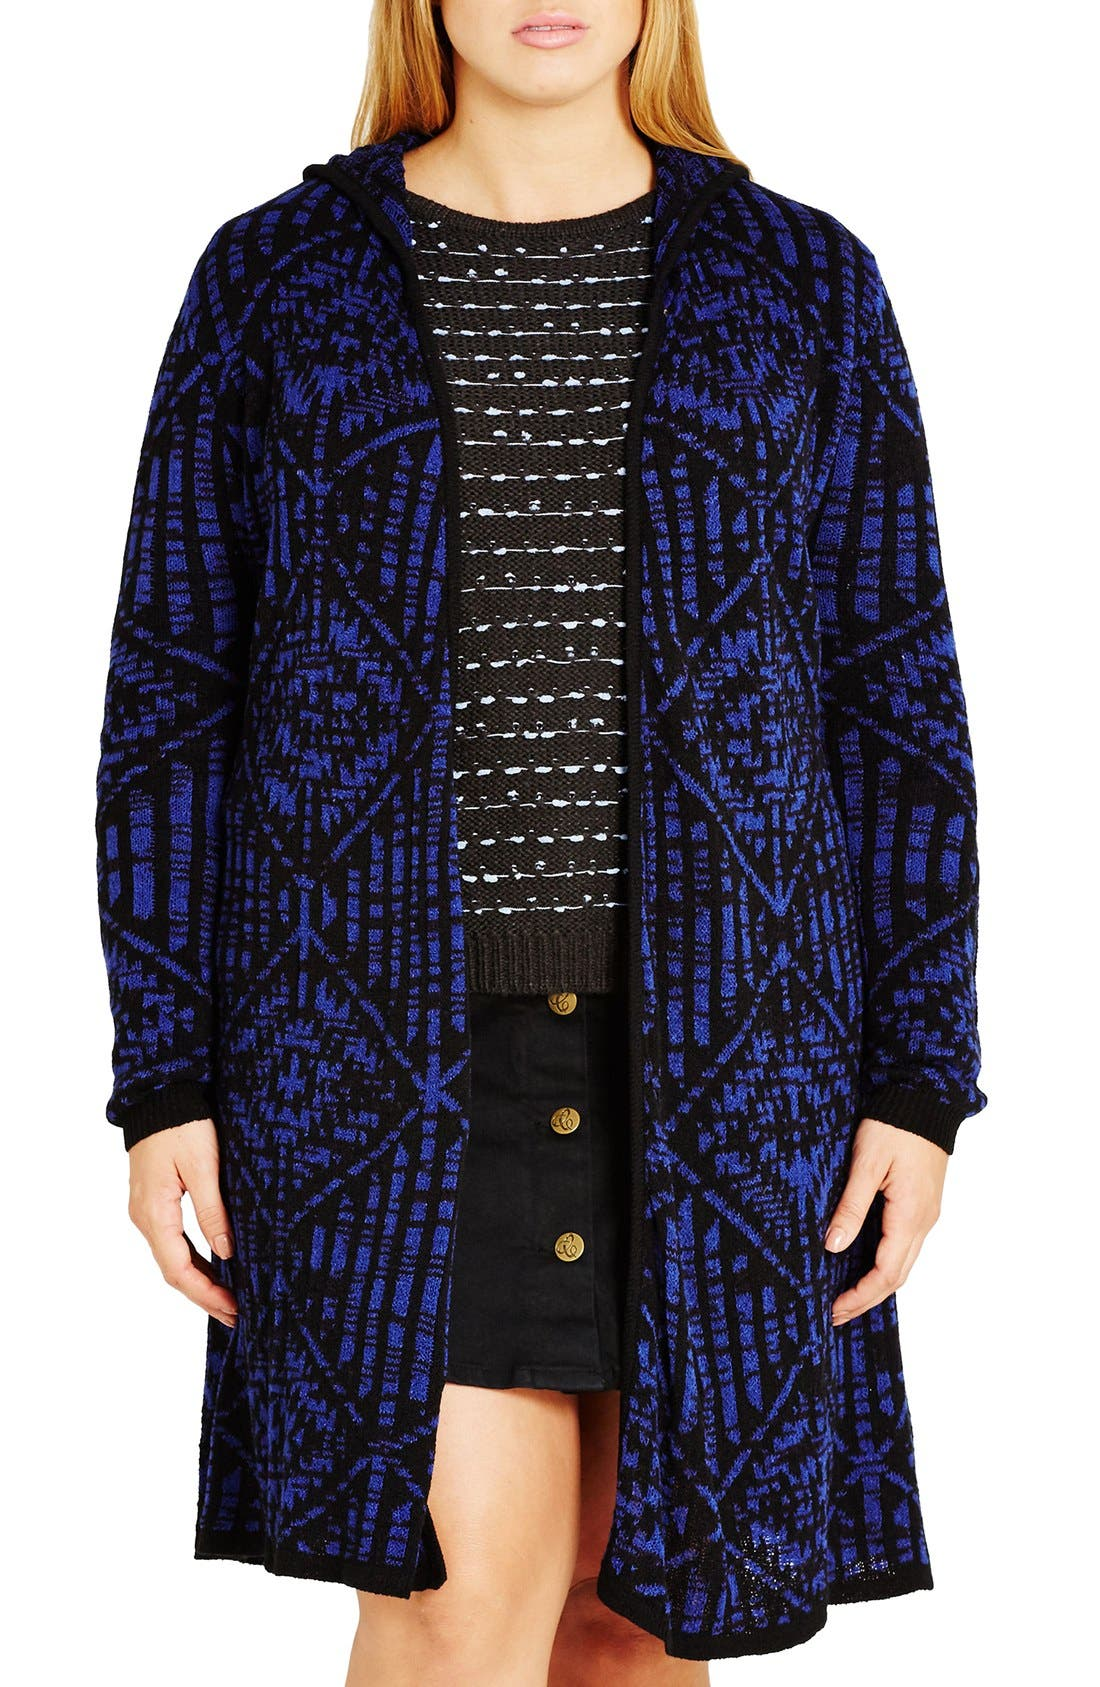 Alternate Image 1 Selected - City Chic Geo Pattern Hooded Cardigan (Plus Size)